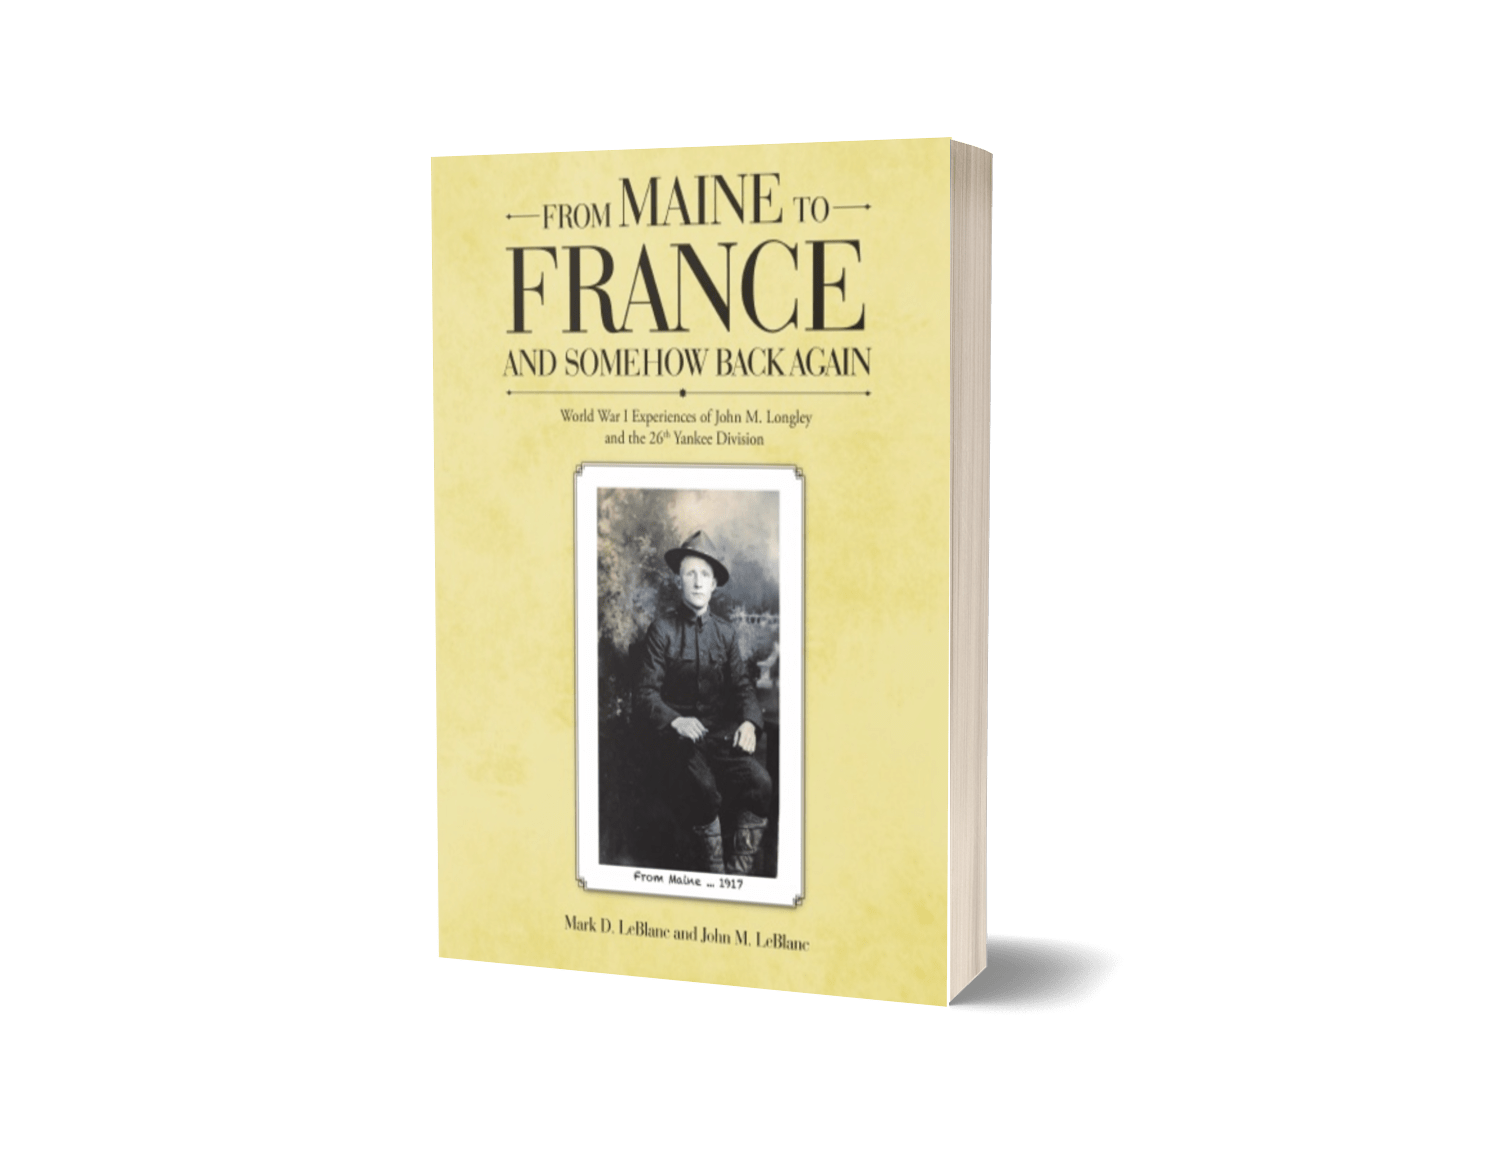 From Maine to France and Somehow Back Again: World War I Experiences of John M. Longley and the 26th Yankee Division